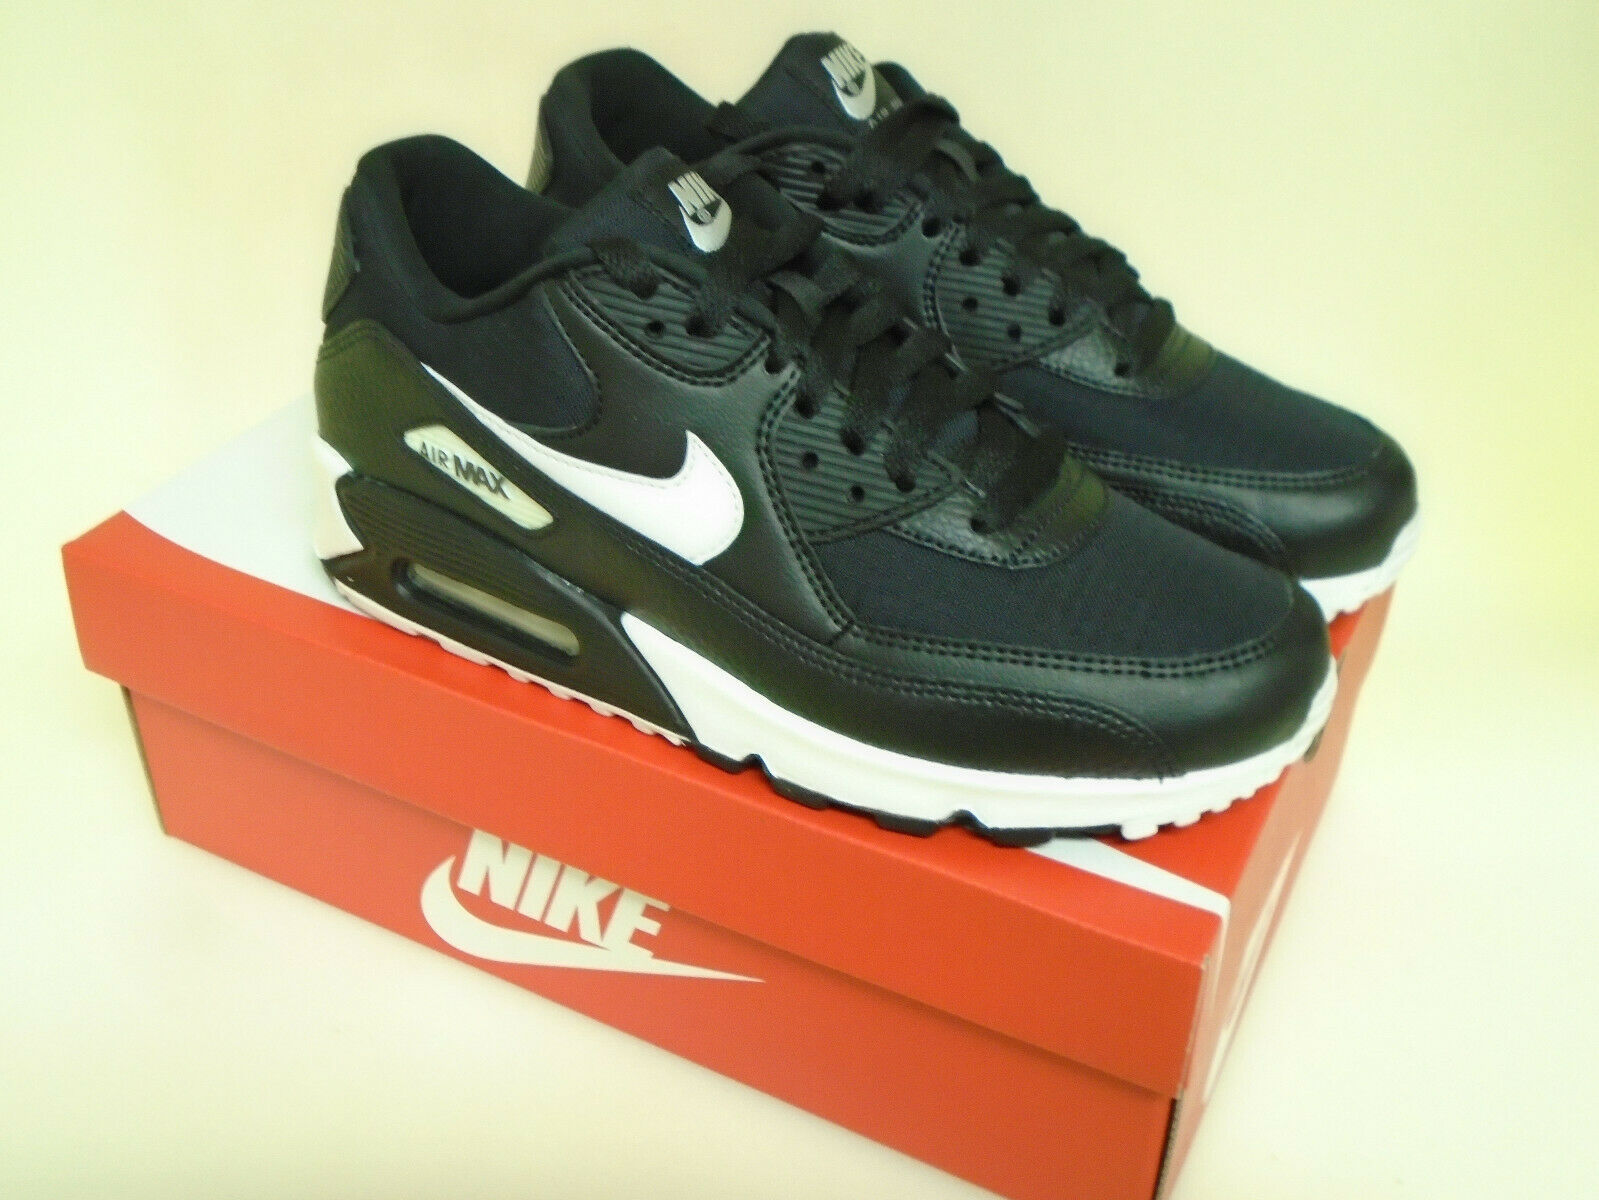 where to buy on feet images of half price Womens Nike Air Max 2015 Sz 9 White Clearwater Black 698903 104 ...